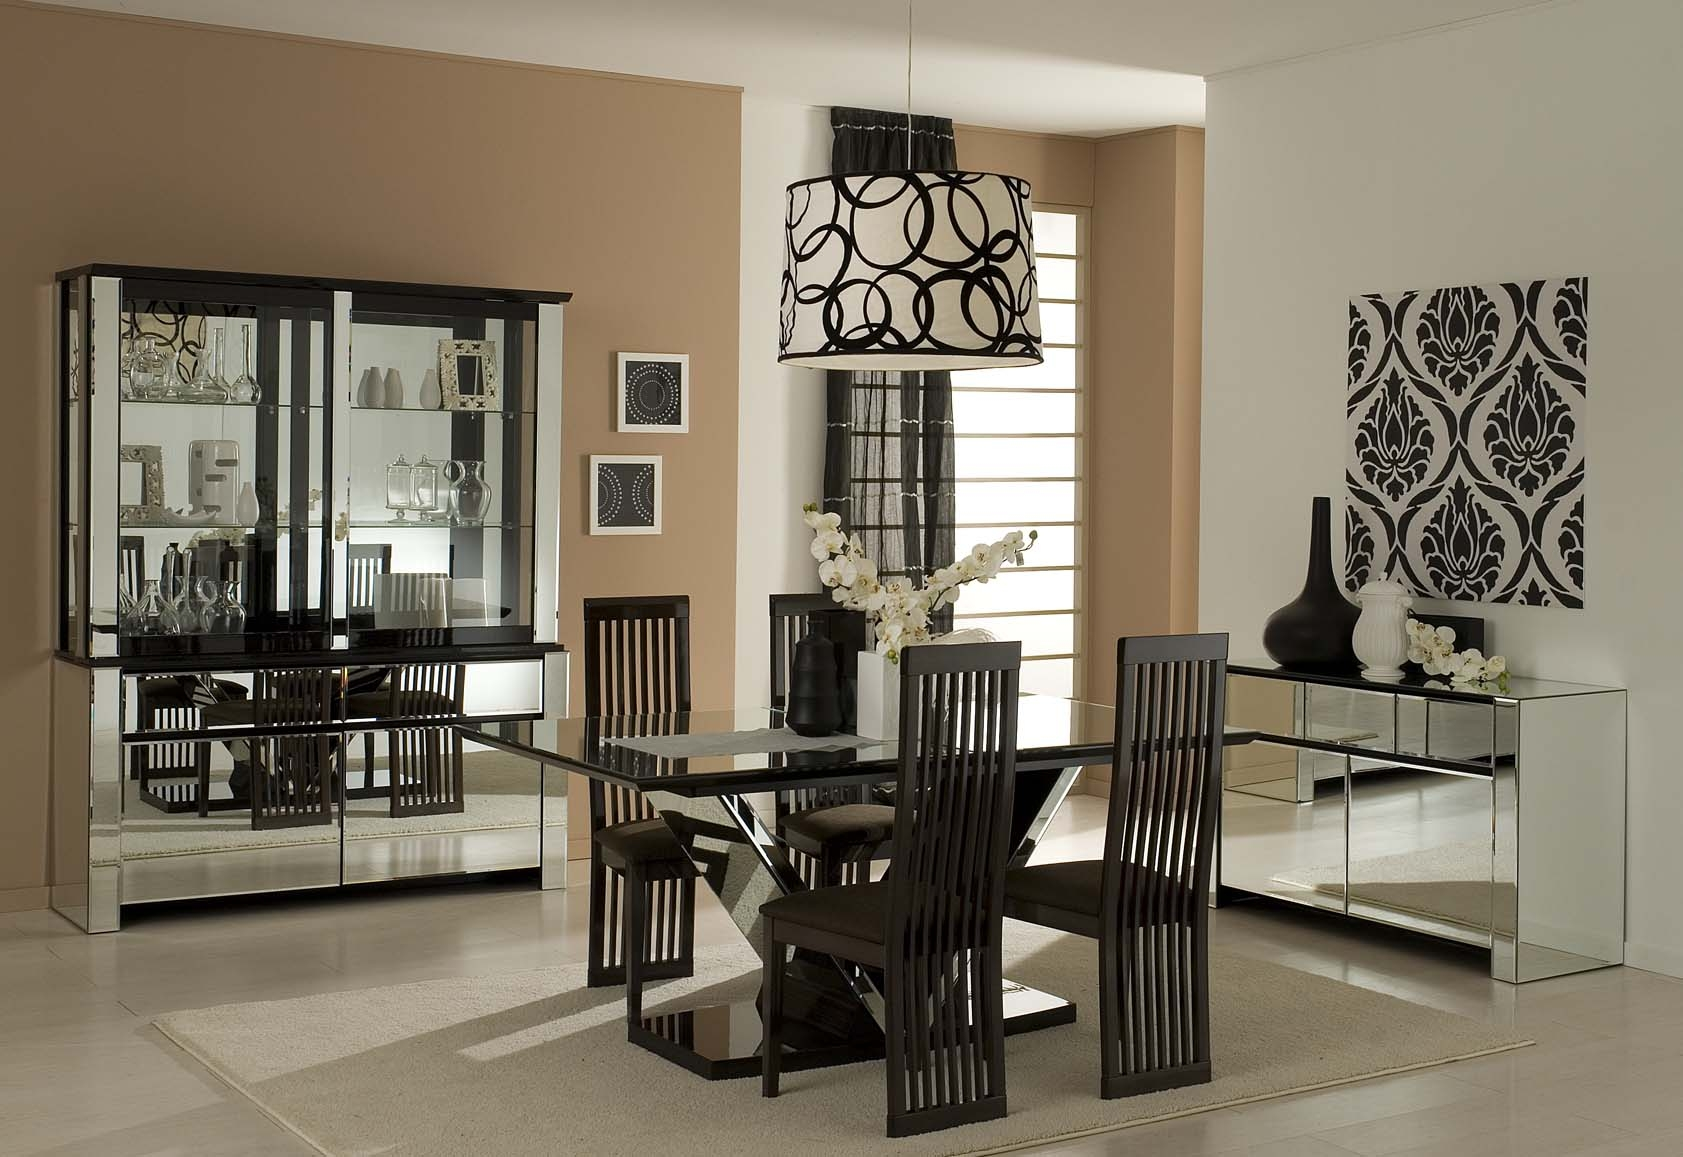 decorating dining room ideas photo - 2